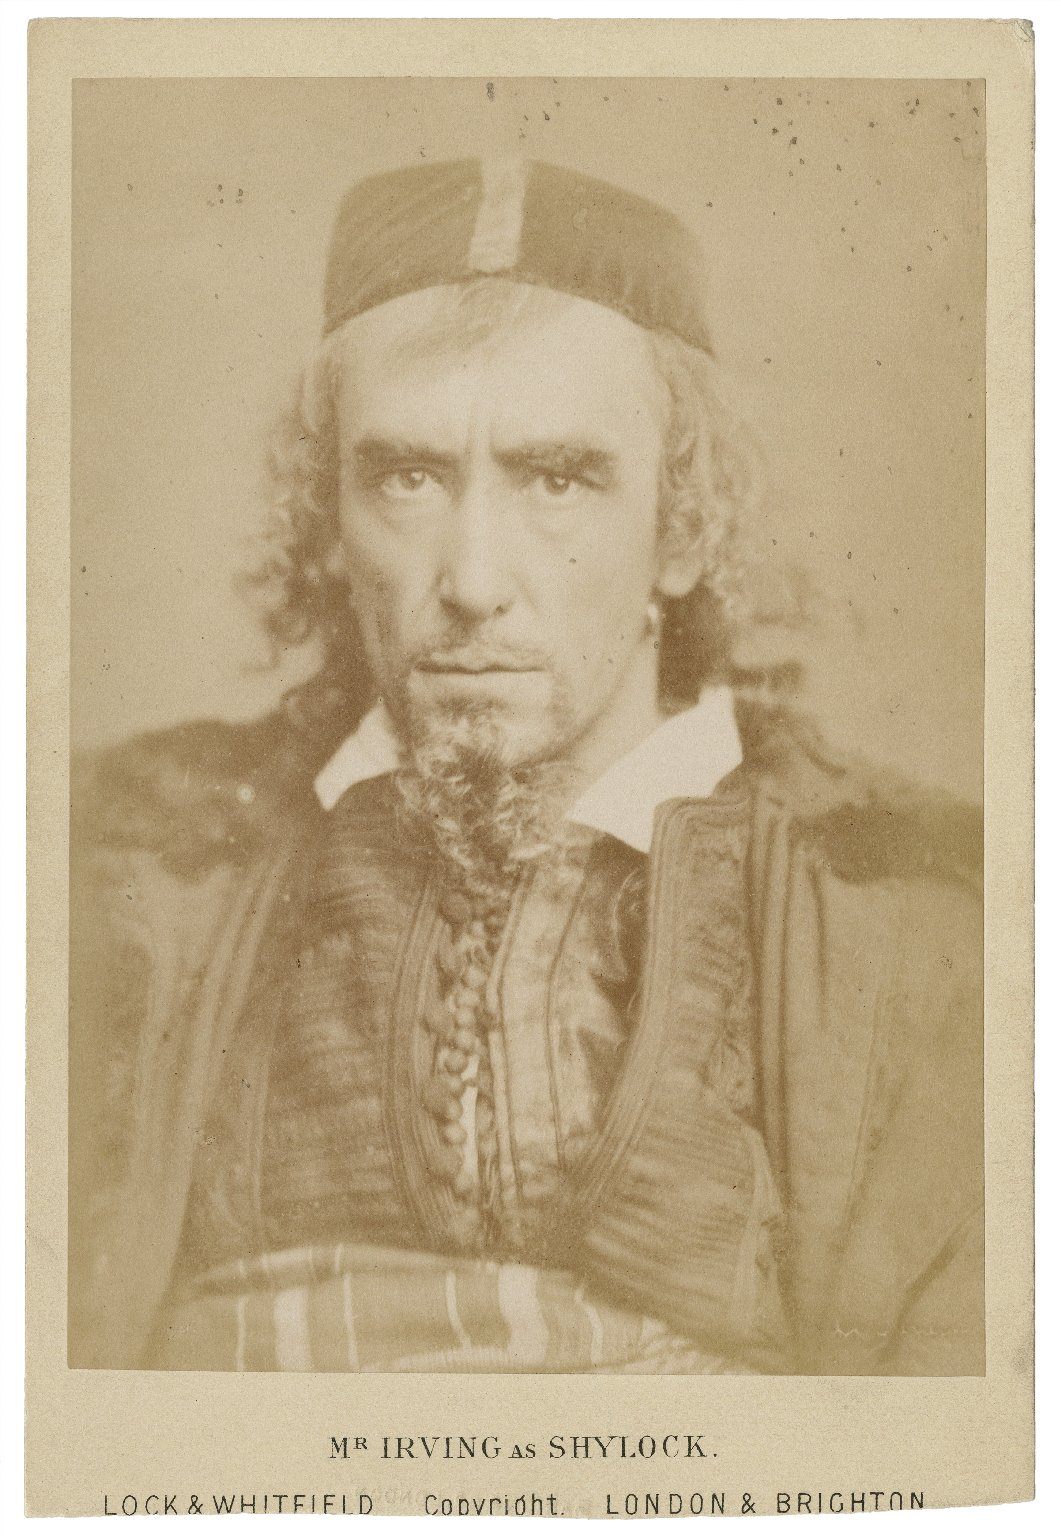 Mr. Irving as Shylock [in Shakespeare's Merchant of Venice] [graphic] / Lock & Whitfield, copyright.